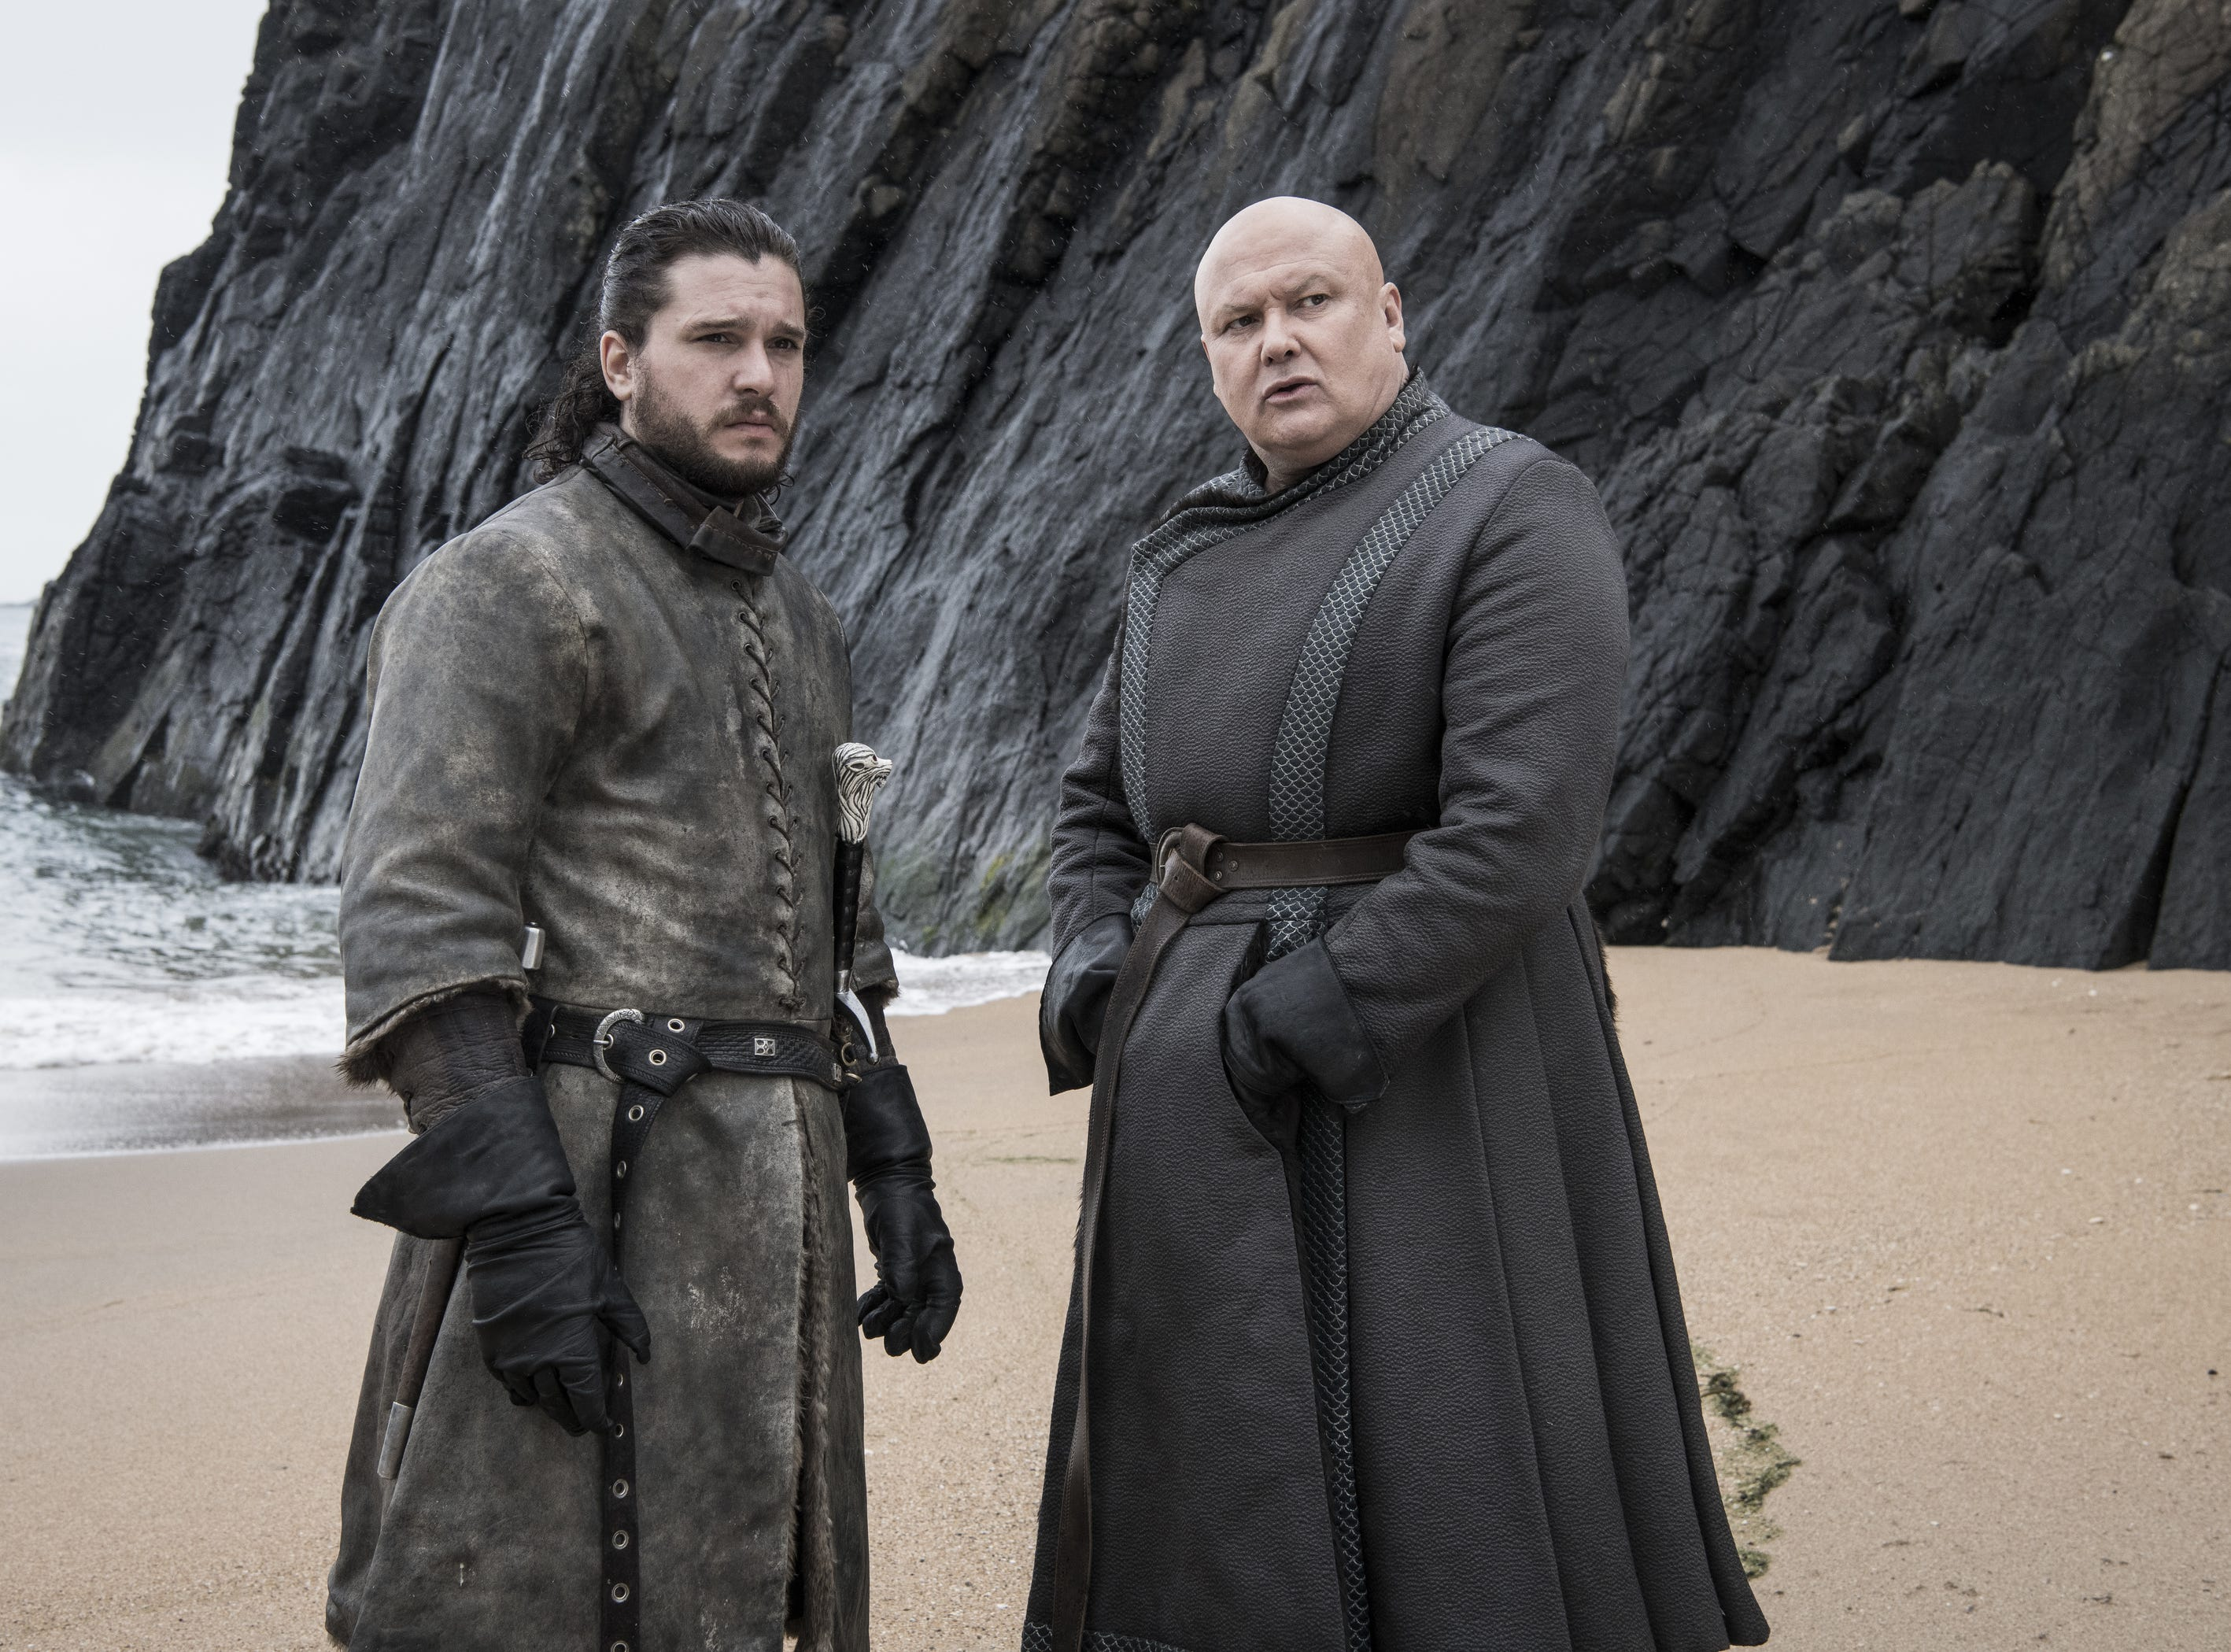 This conversation with Jon Snow (Kit Harington), left, didn't work out well for Varys (Conleth Hill).